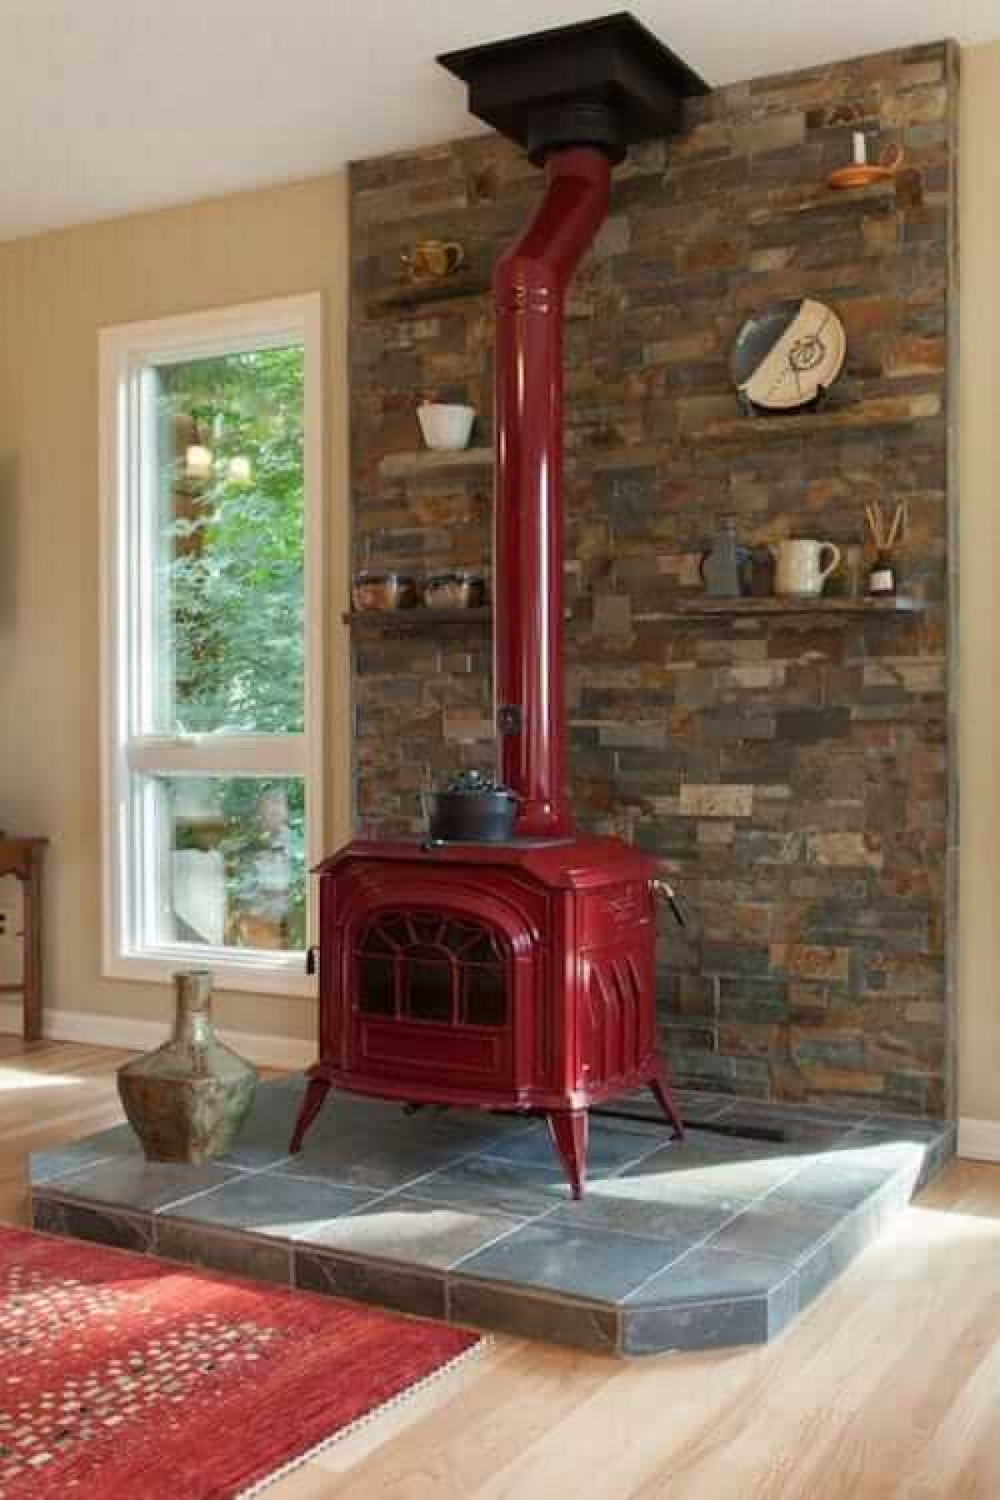 Heat Resistant Tiles Can You Use Tiles Around A Wood Burner In 2020 Wood Burning Stoves Living Room Living Room Wood Wood Stove